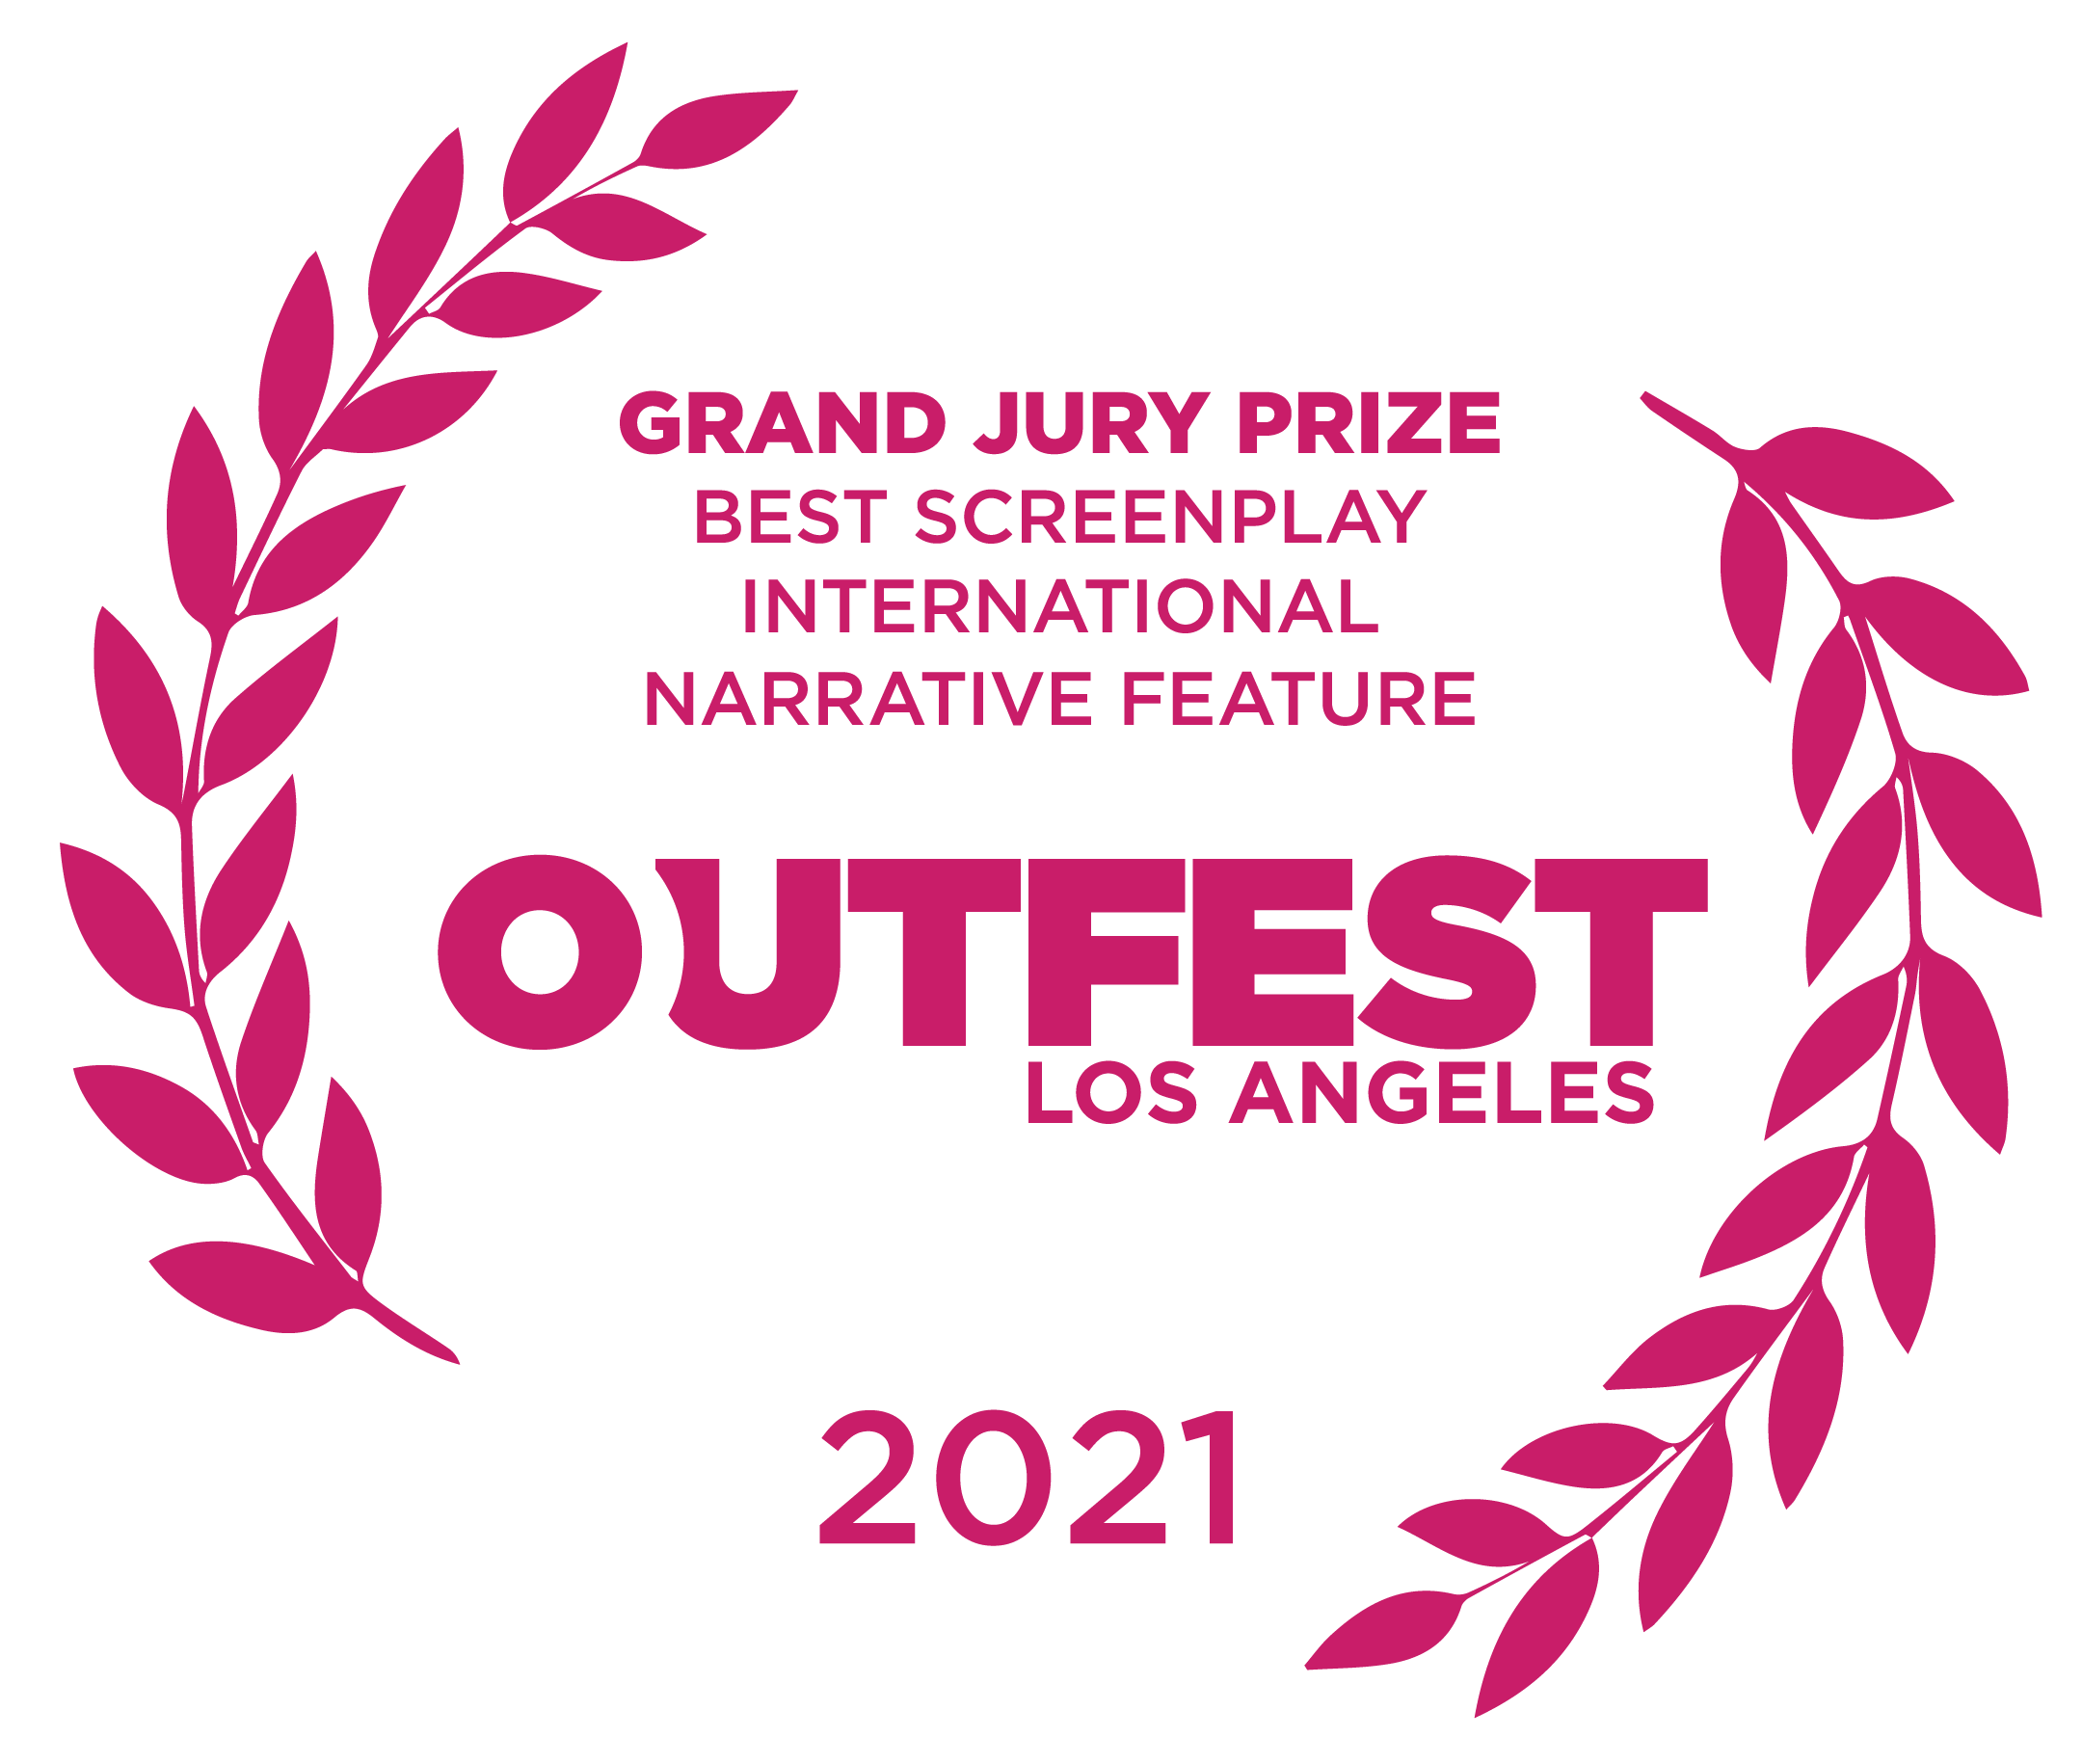 OutFest Los Angeles LGBT Film Festival -  International Narrative Feature Grand Jury Prize for Best Screenplay